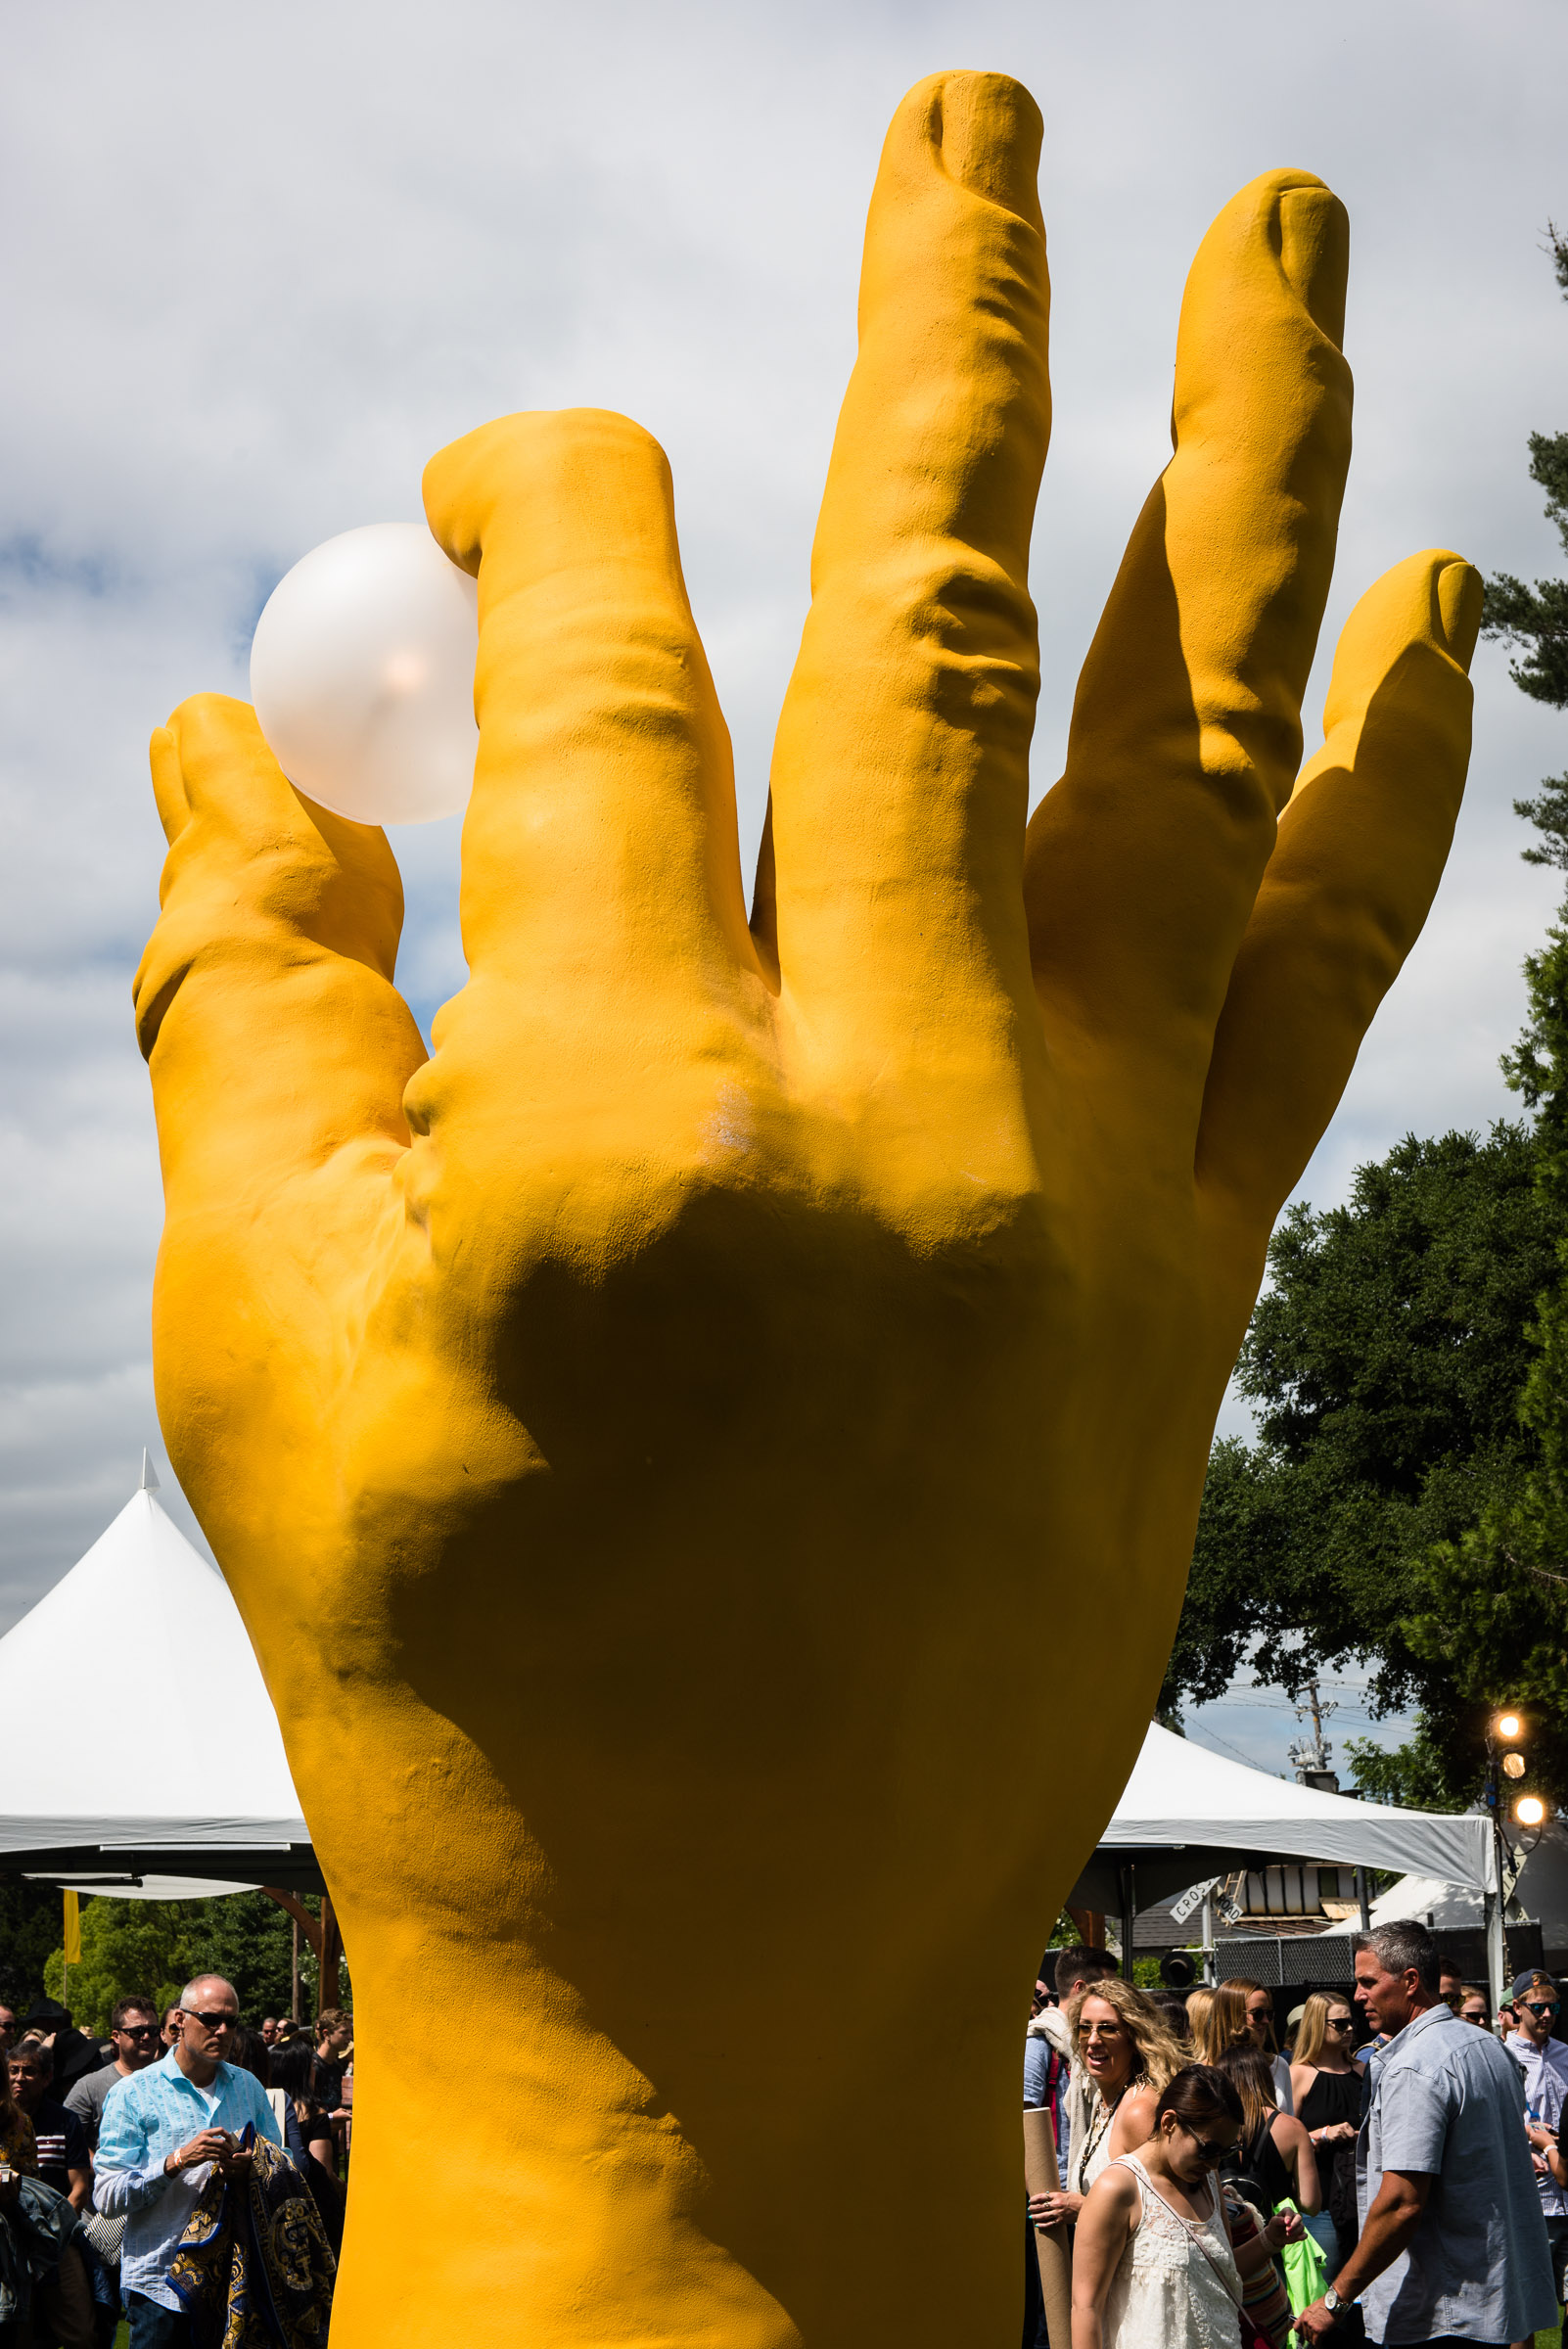 The Hand of The Land